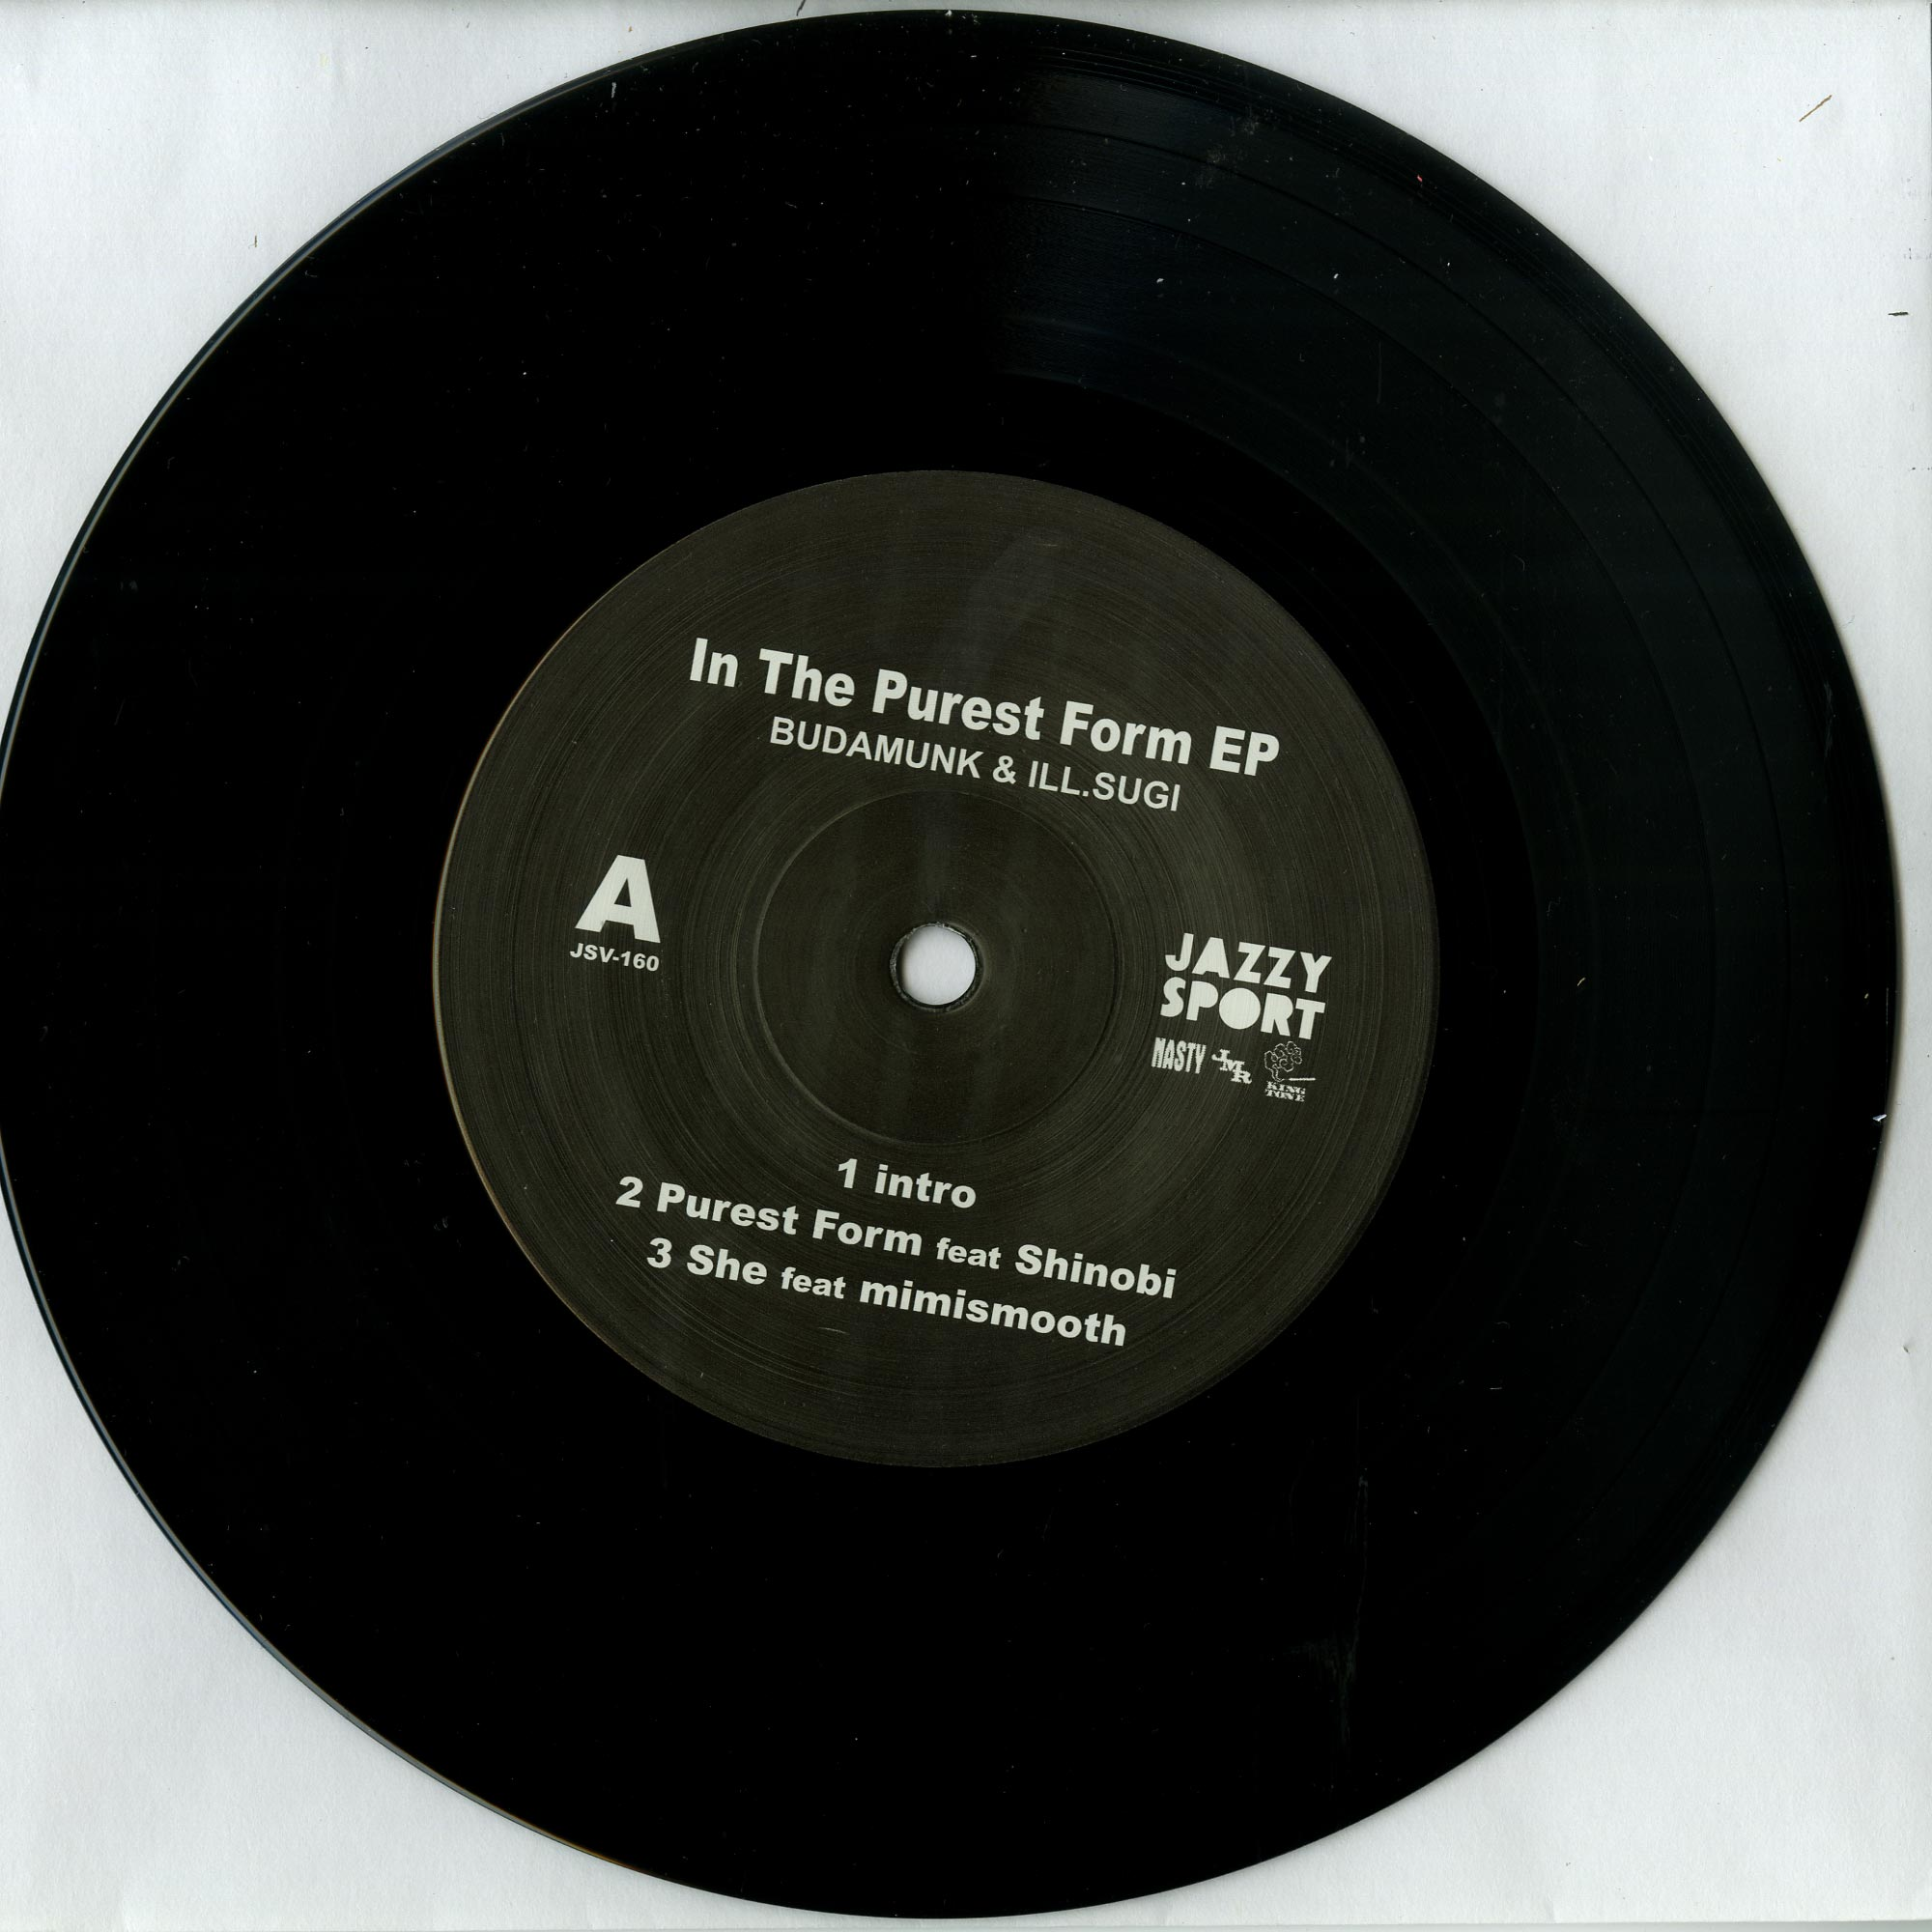 Budamunk & Ill.Sugi - IN THE PUREST FORM EP